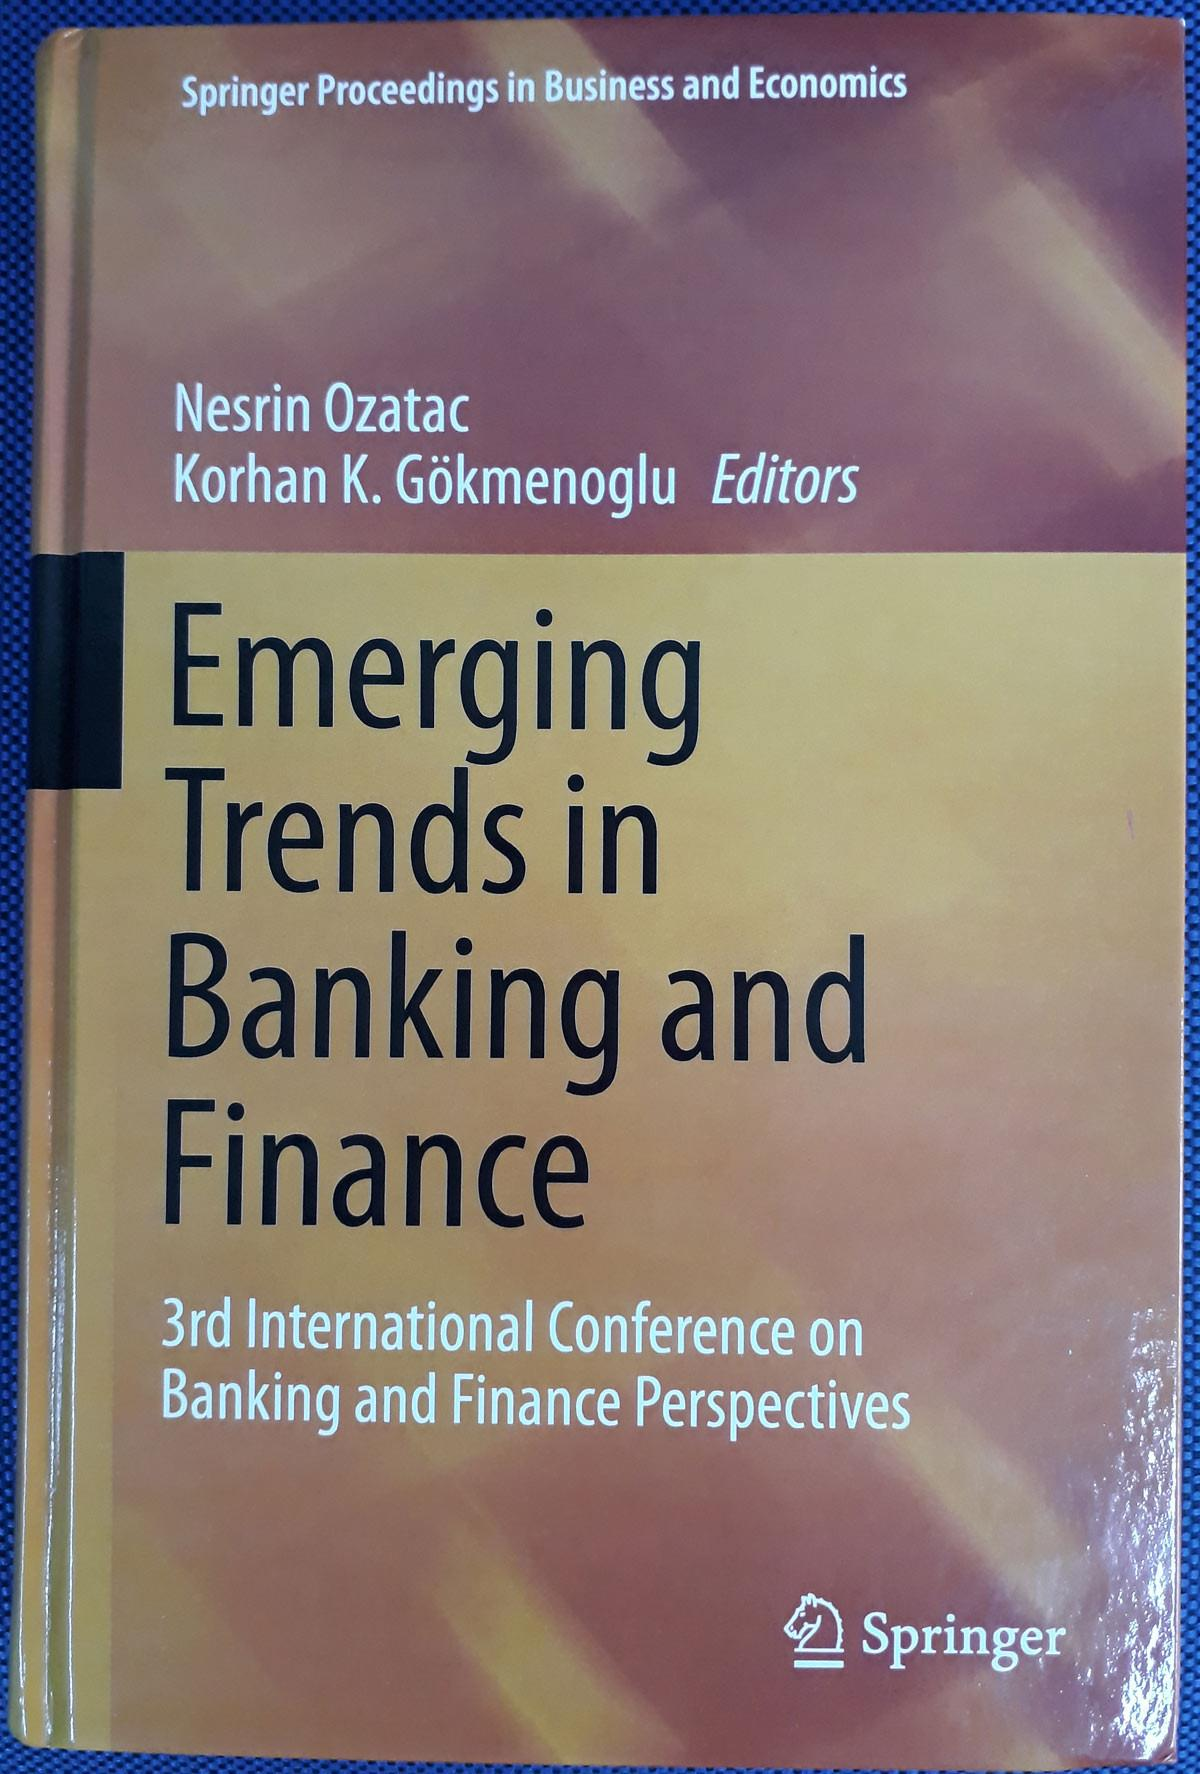 EMU Banking and Finance Conference Proceedings Published in Springer